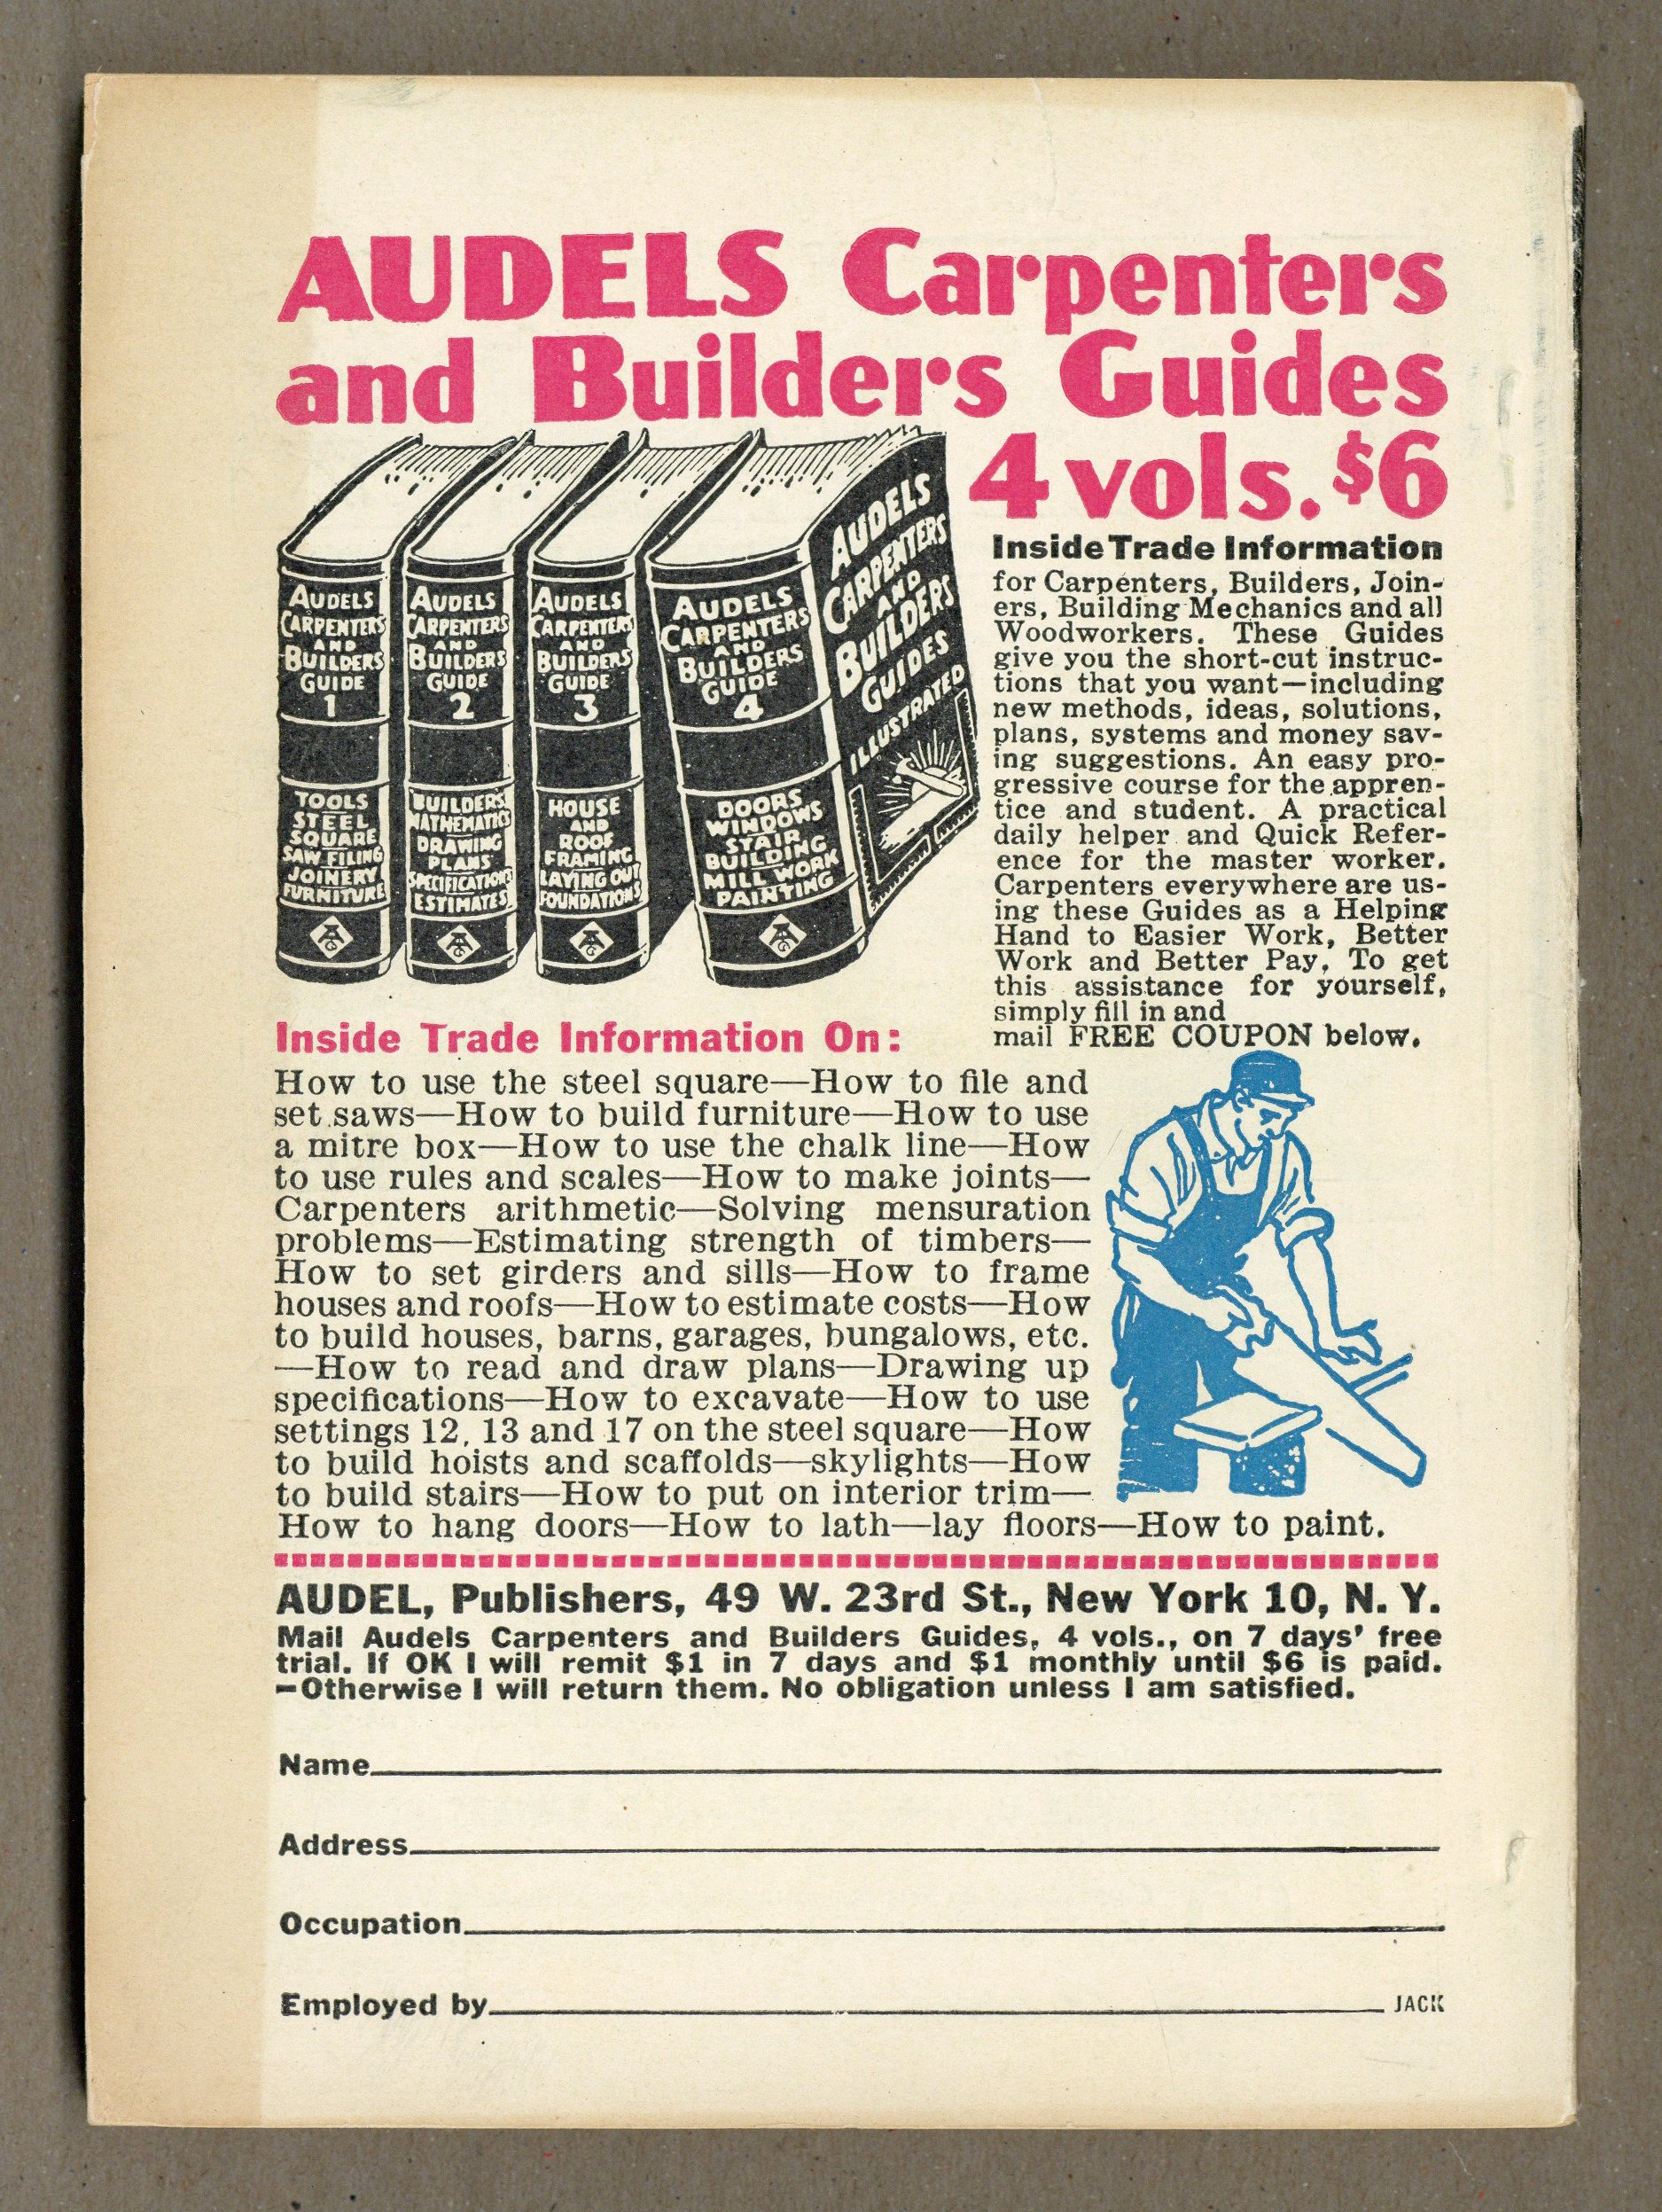 Audels Carpenters And Builders Guide 4